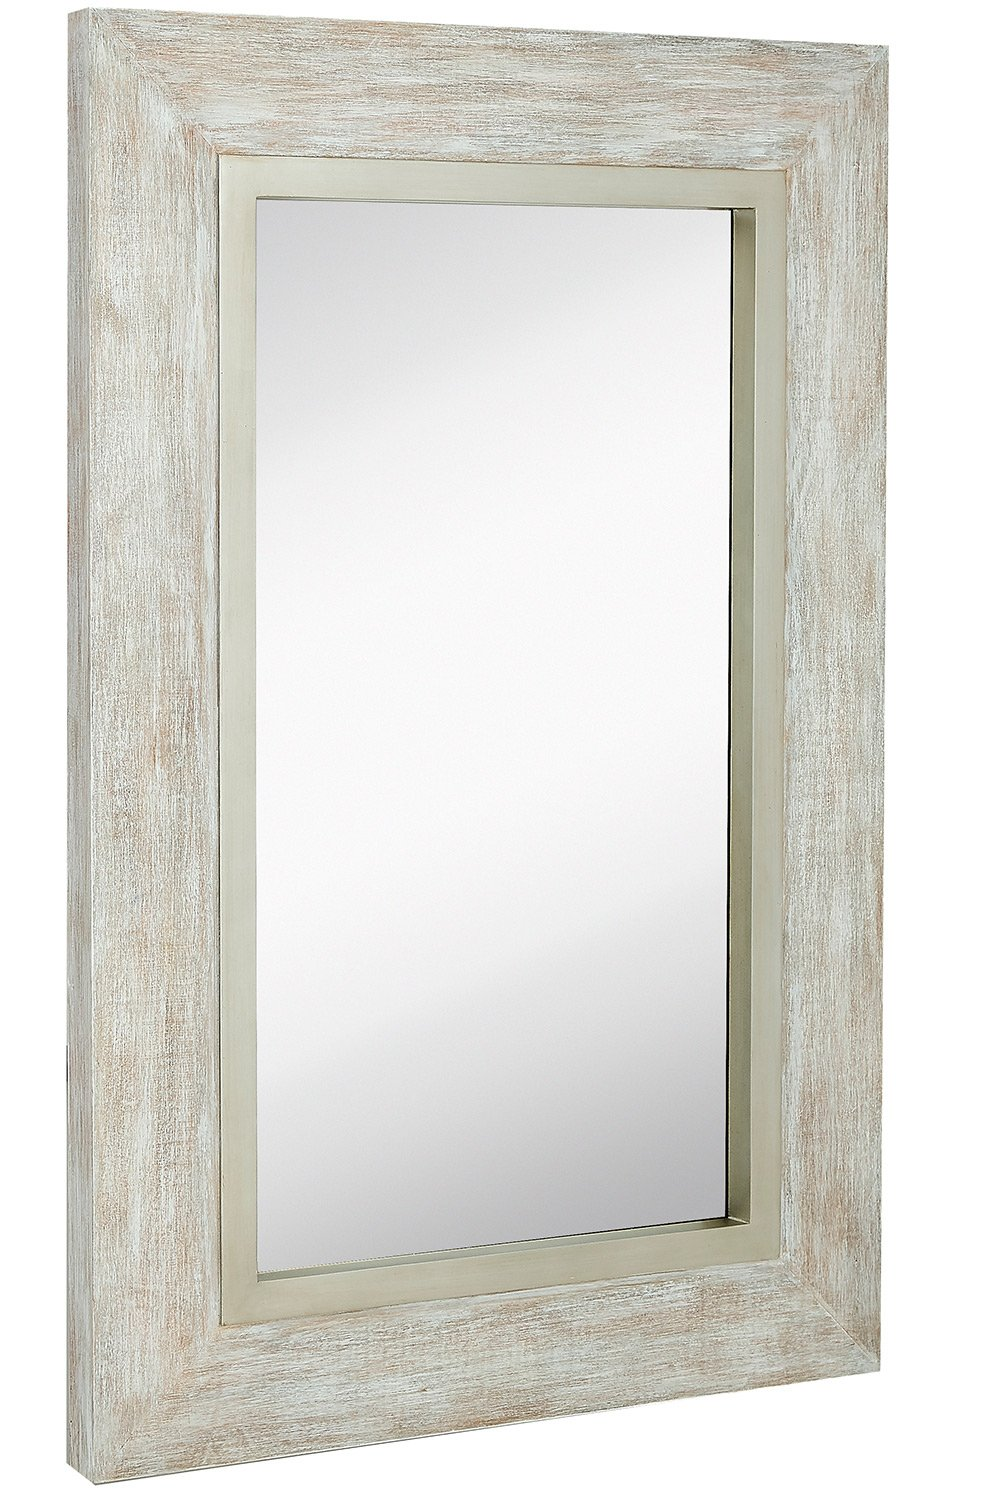 Large White Washed Framed Mirror   Beach Distressed Frame   Solid Glass Wall Mirror   Vanity, Bedroom, or Bathroom   Hangs Horizontal or Vertical   100% (24'' x 36'')